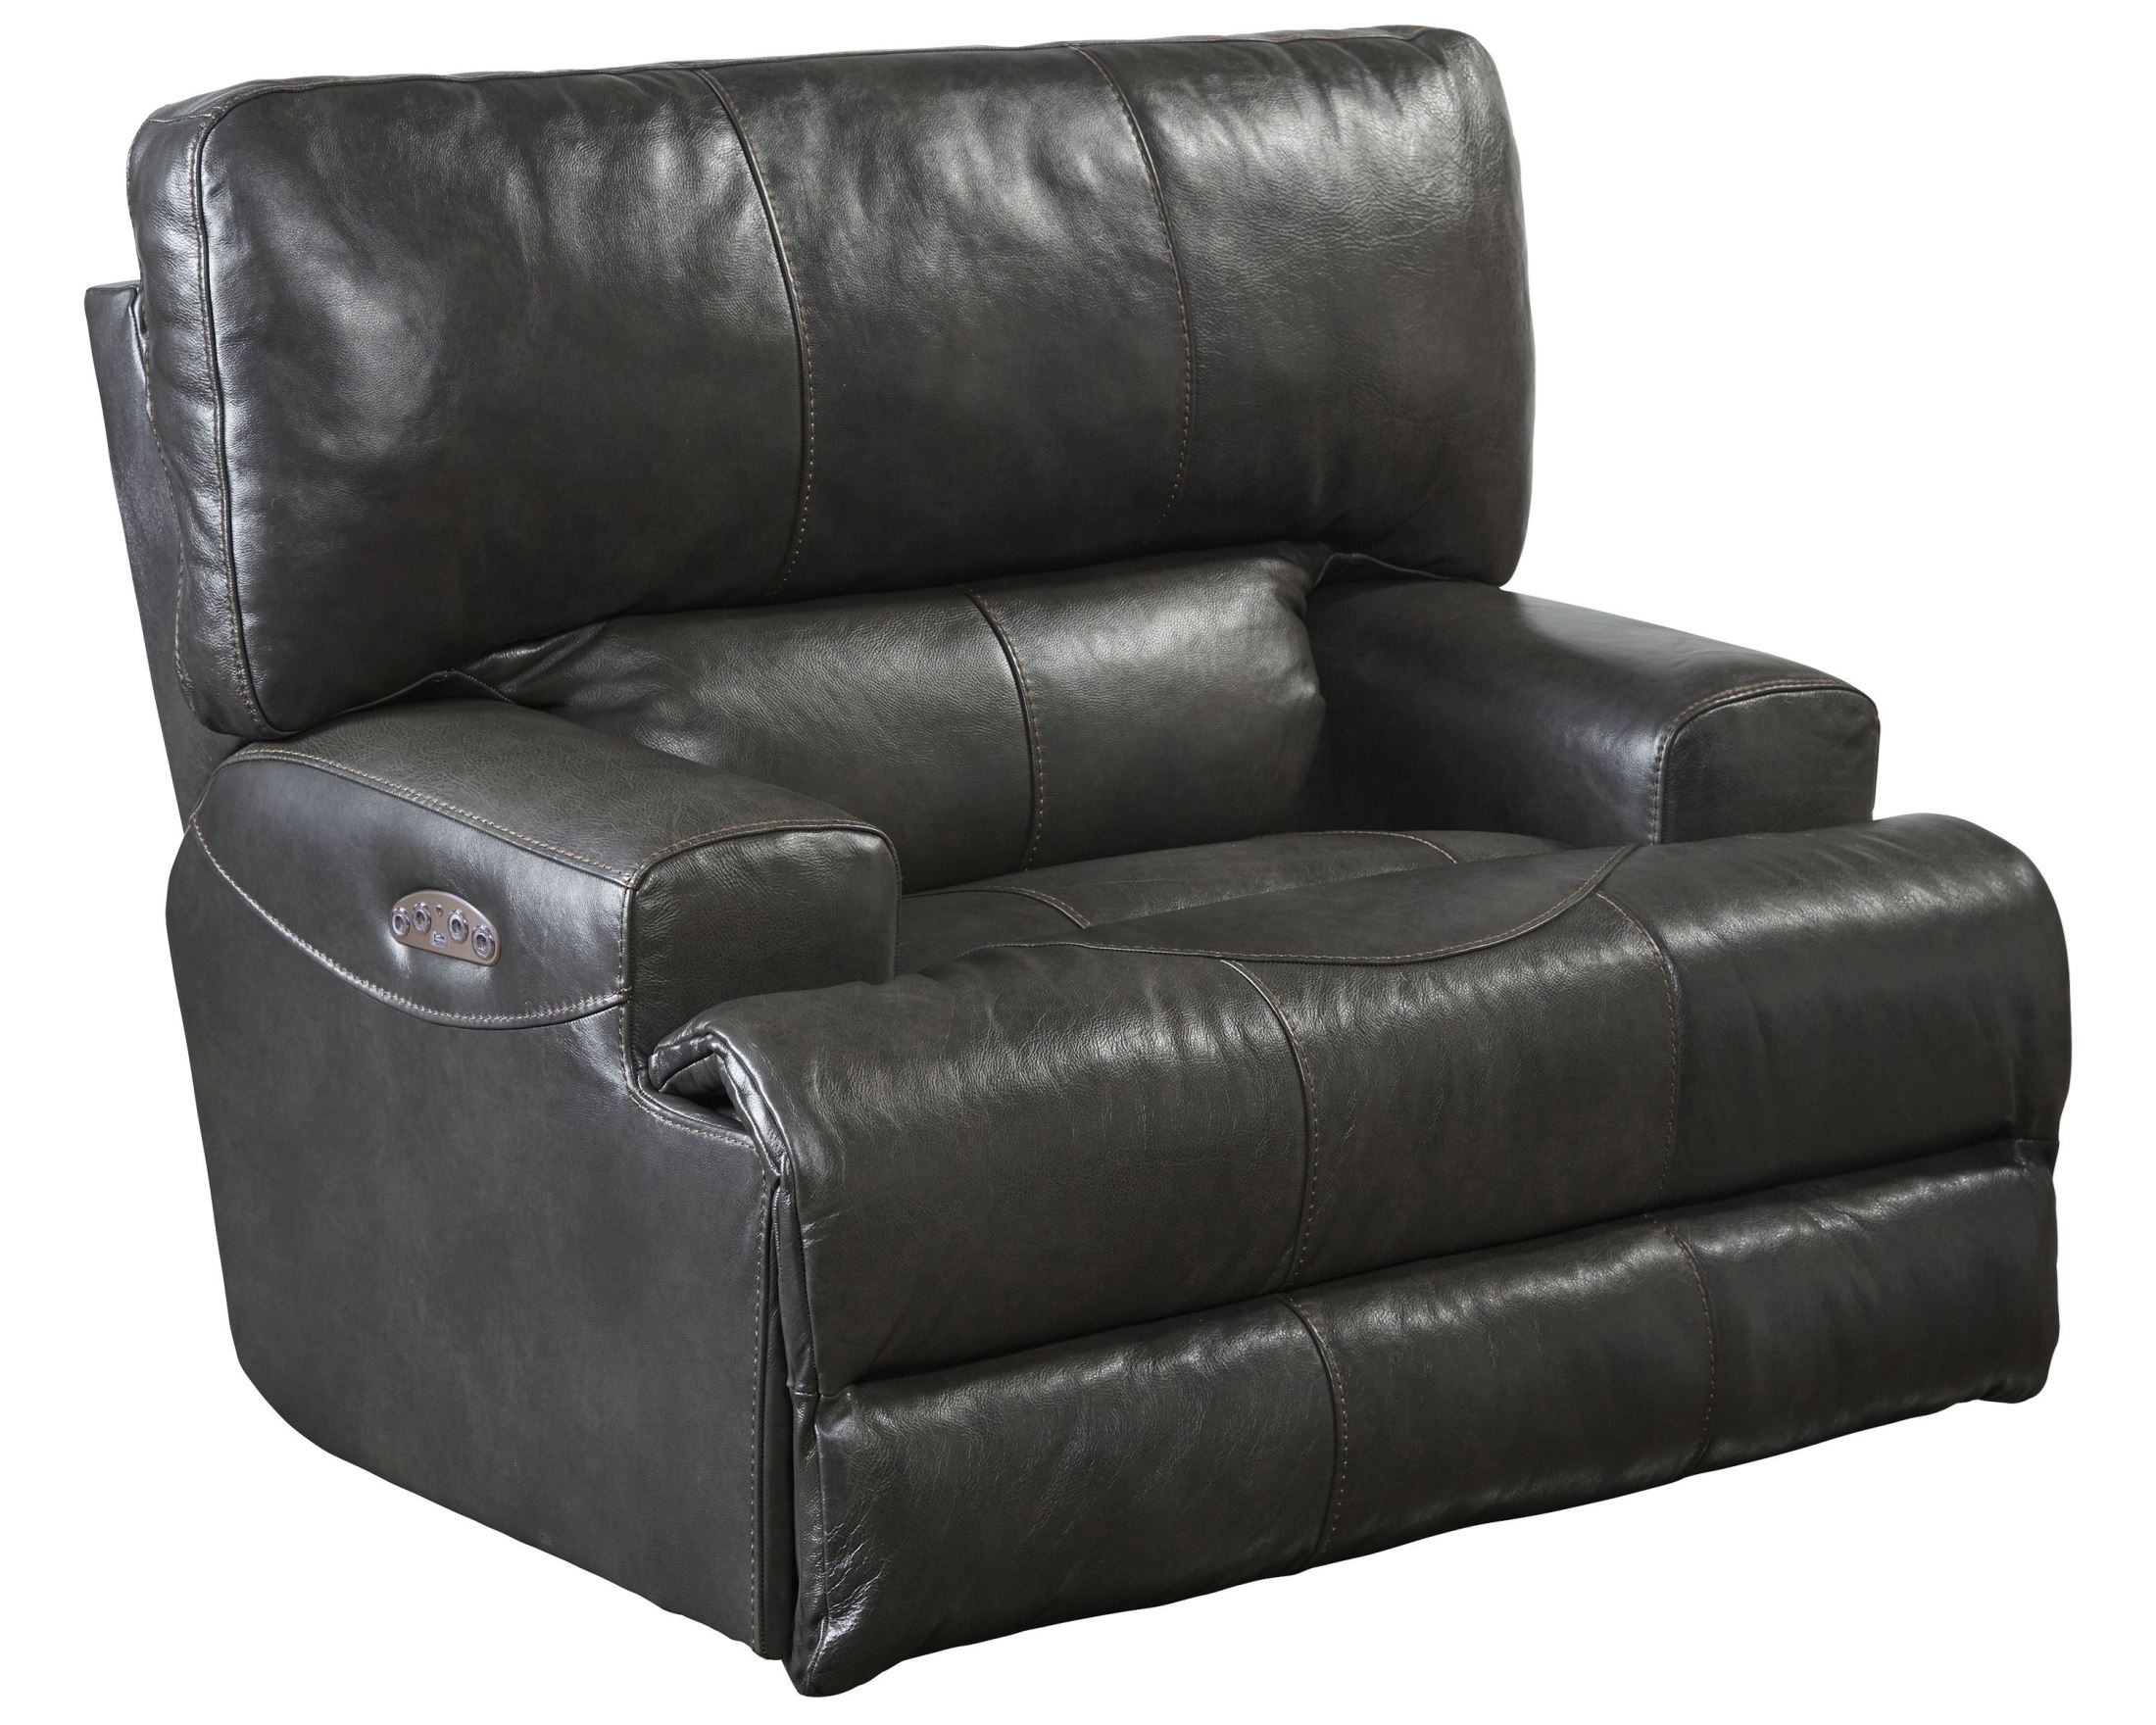 lay flat recliner chairs chair cover rental penang wembley steel power from catnapper